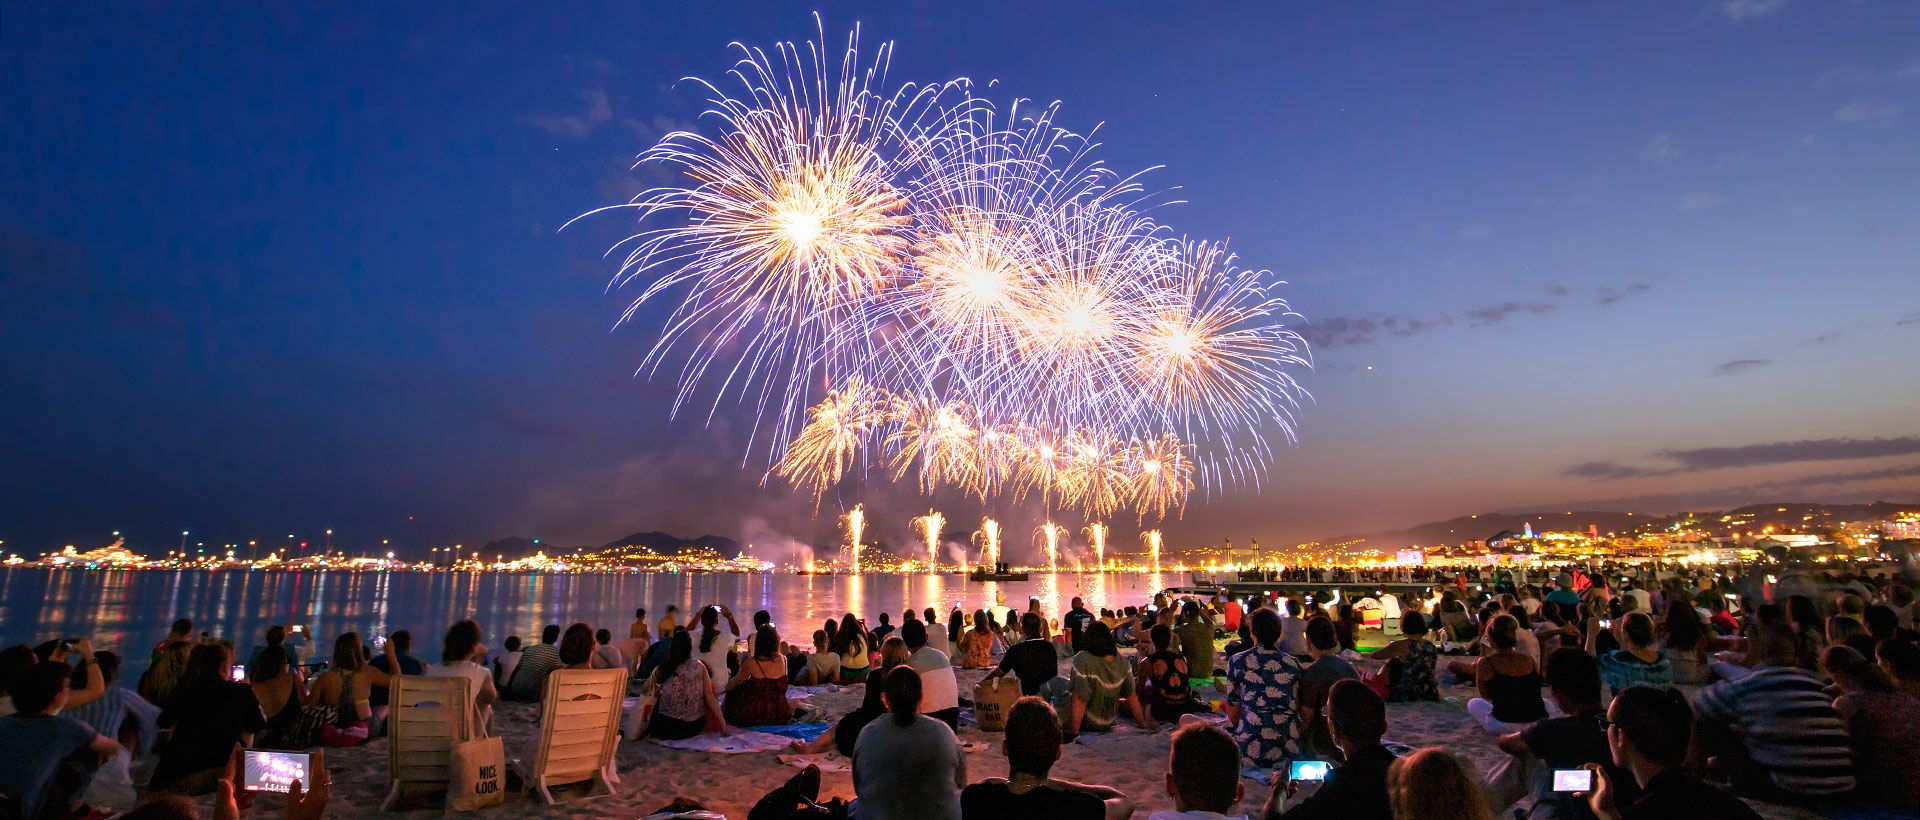 Camping Firework Festival in Cannes